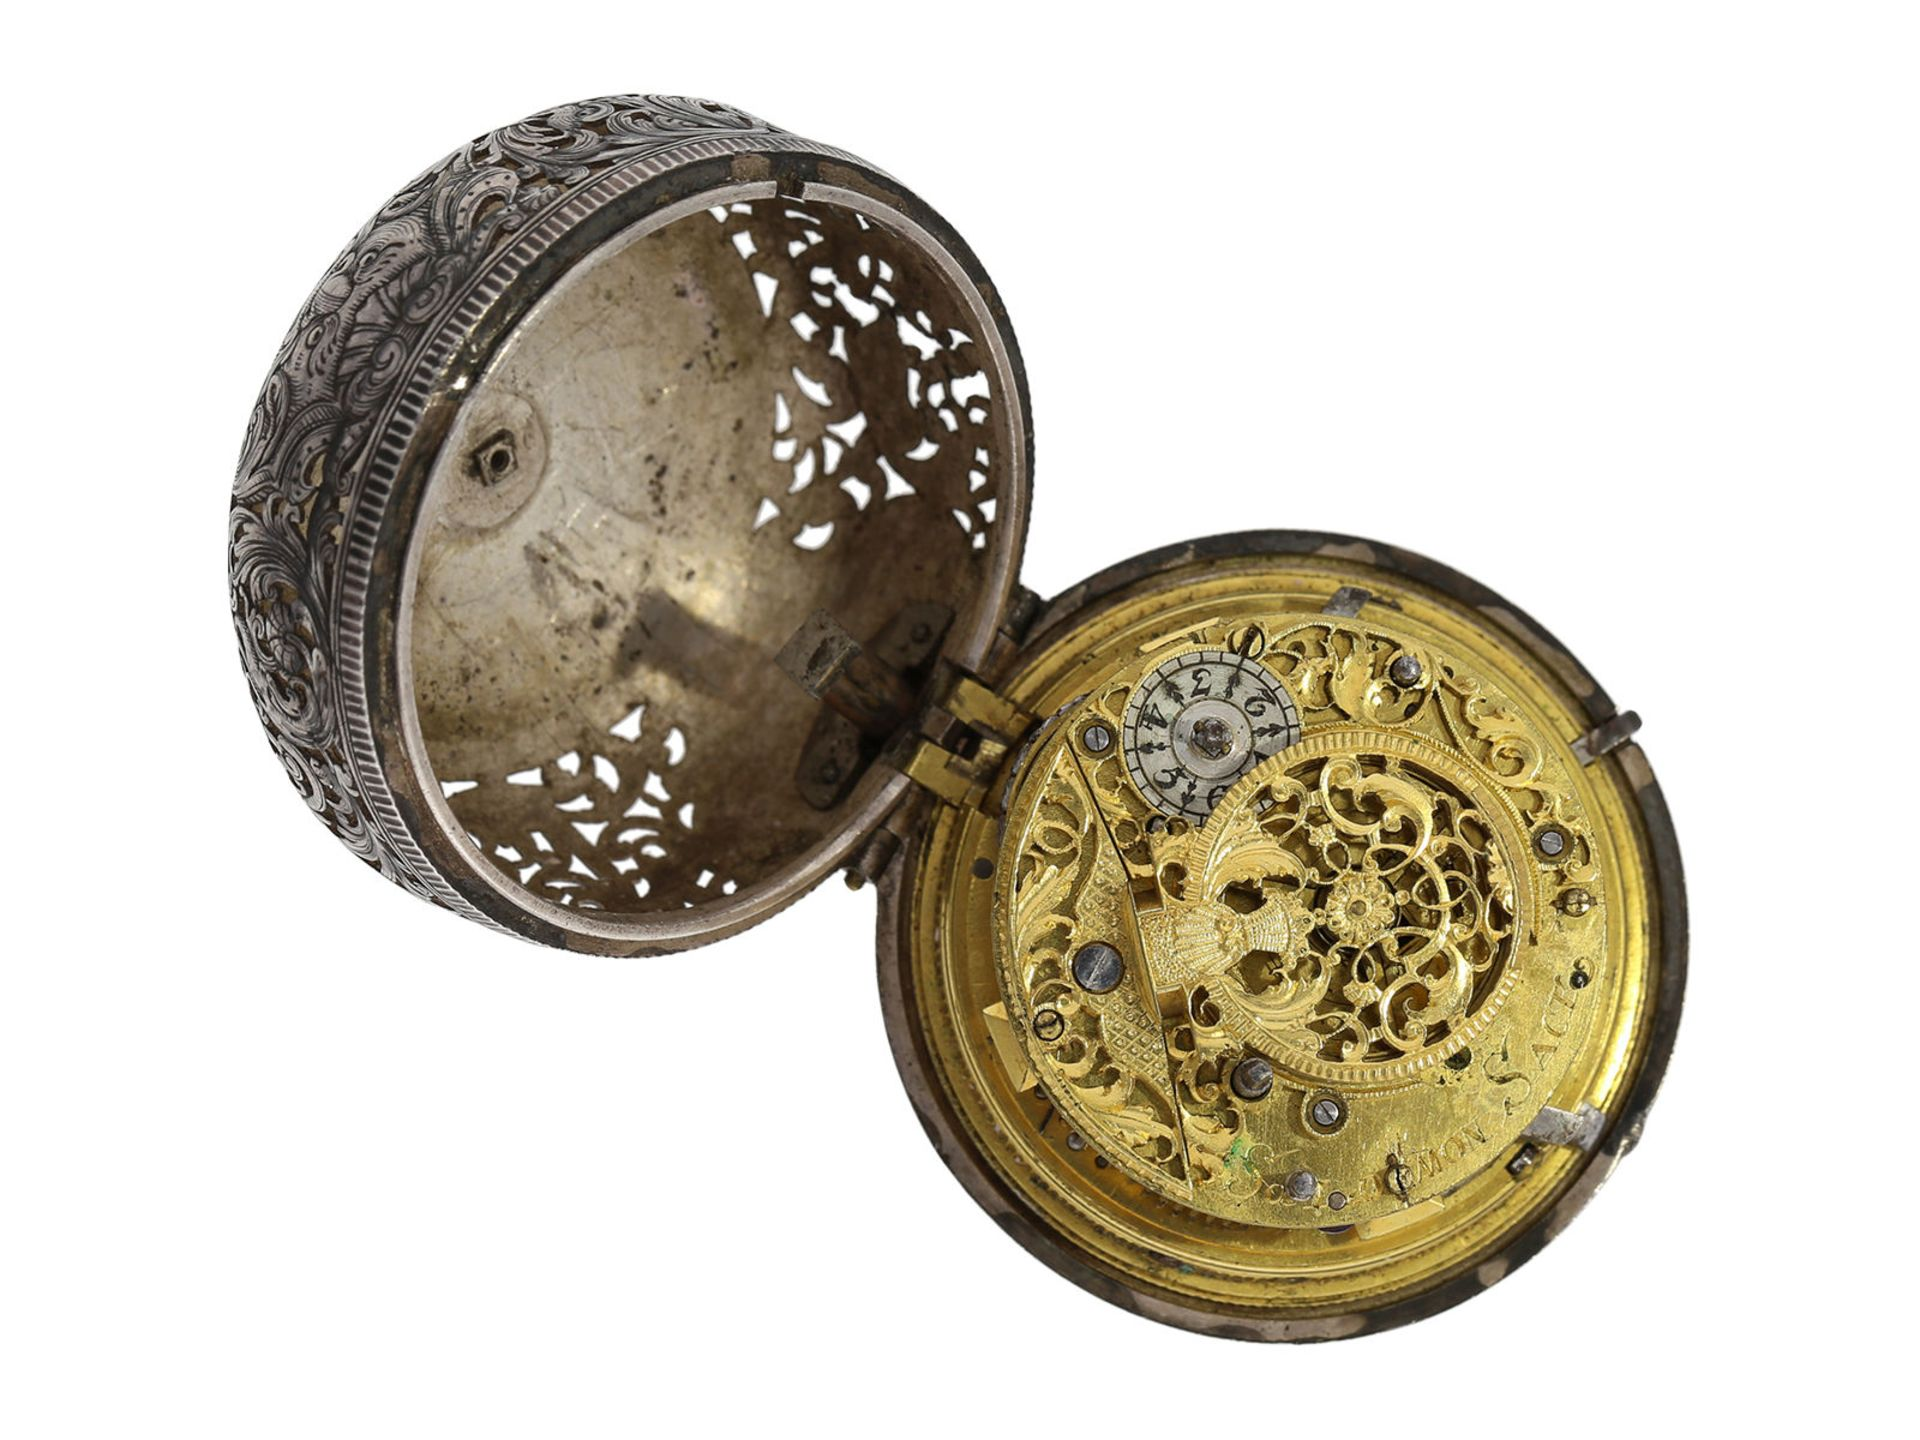 Pocket watch: Augsburg pair case repousse verge watch with relief case in exceptional quality and - Bild 6 aus 14